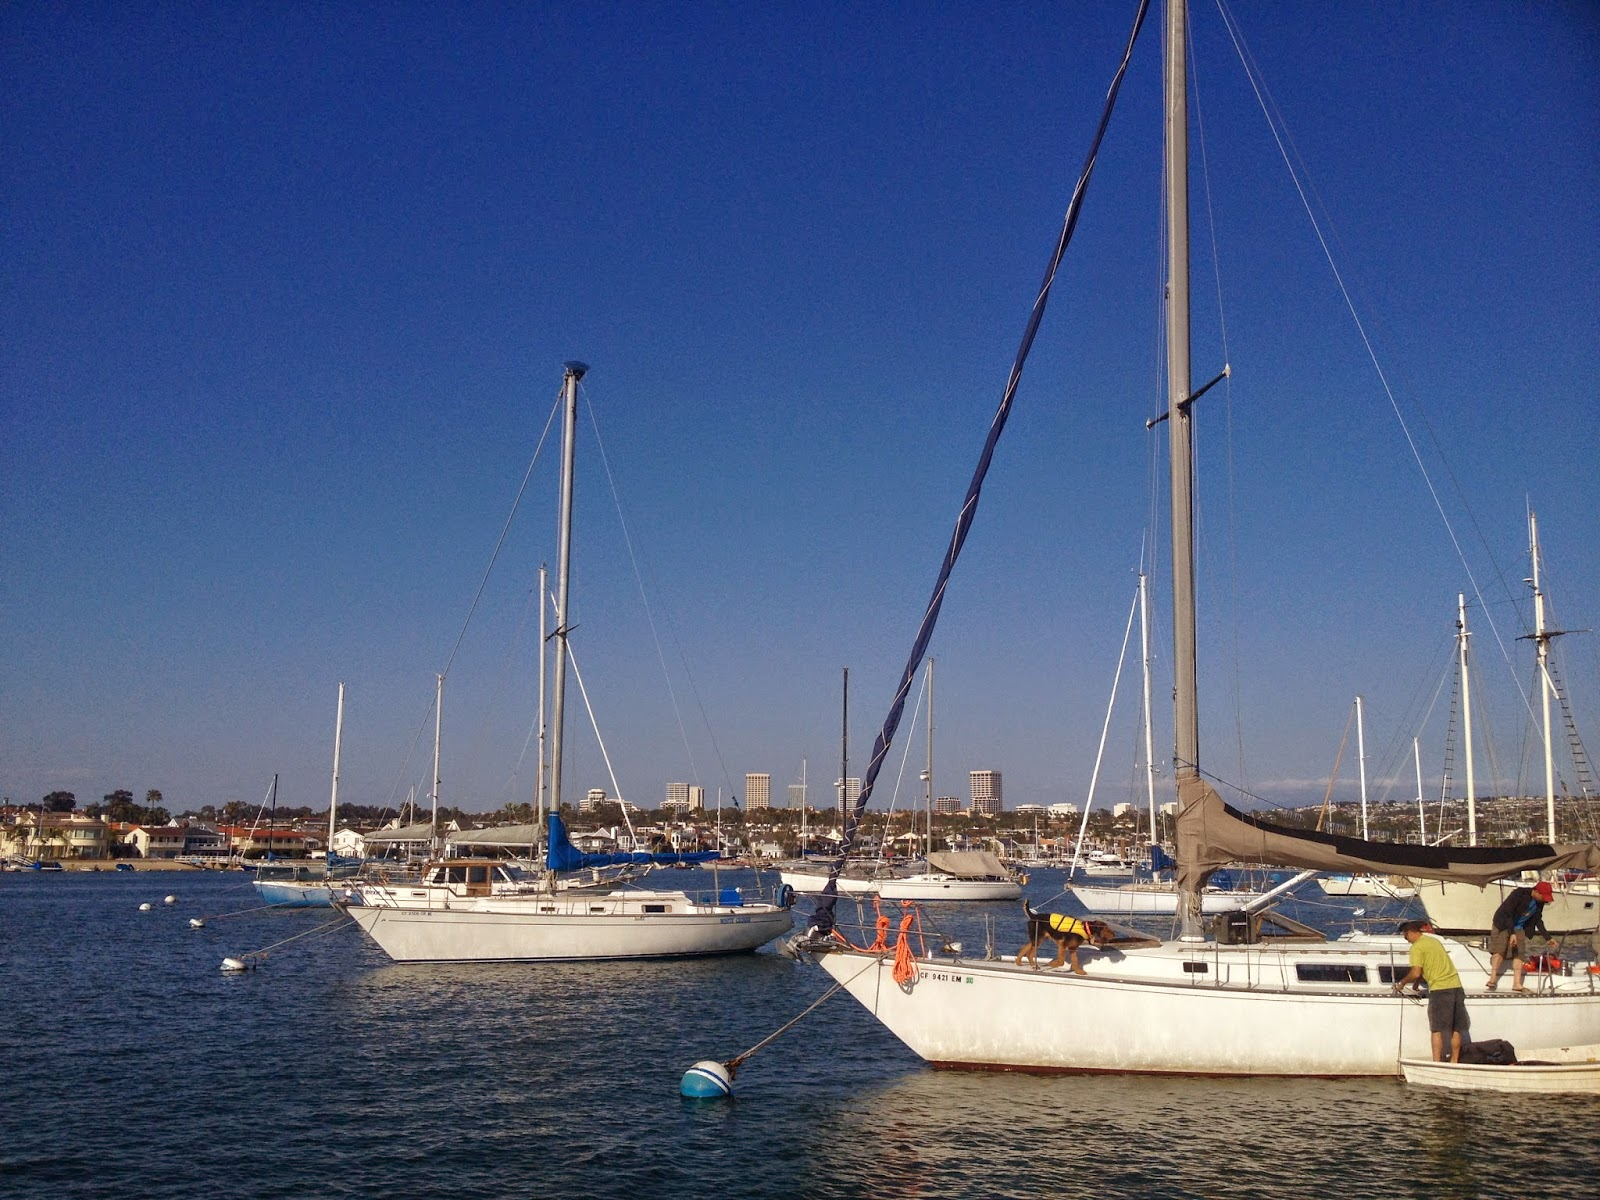 Newport Beach Sail Boats